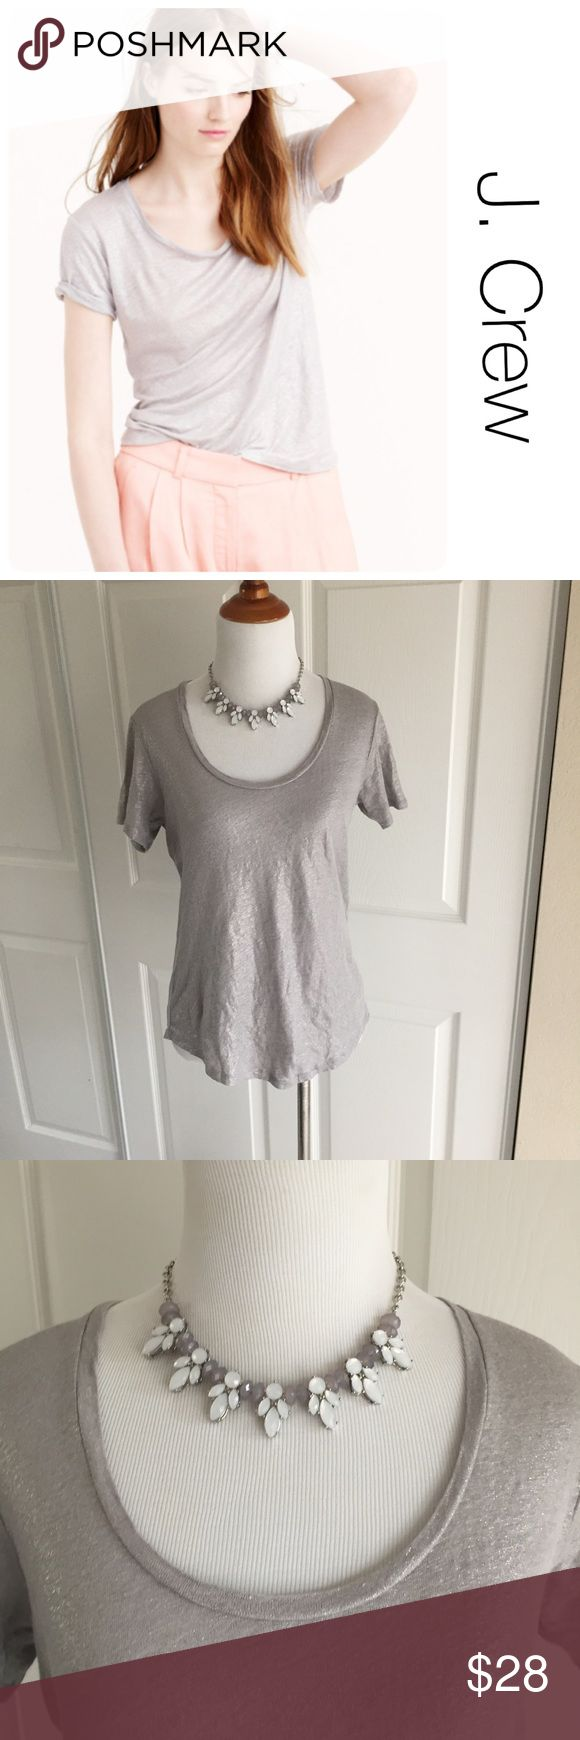 J. Crew Linen Silver Metallic Shirt XS ♦️Excellent condition. No holes, stains or piling ♦️Materials- 100% linen♦️Measurements:                               ♦️Laying flat armpit to armpit: approximately inches   ♦️Laying flat from the back of the neck to the bottom of the front hem is approximately inches J. Crew Tops Tees - Short Sleeve